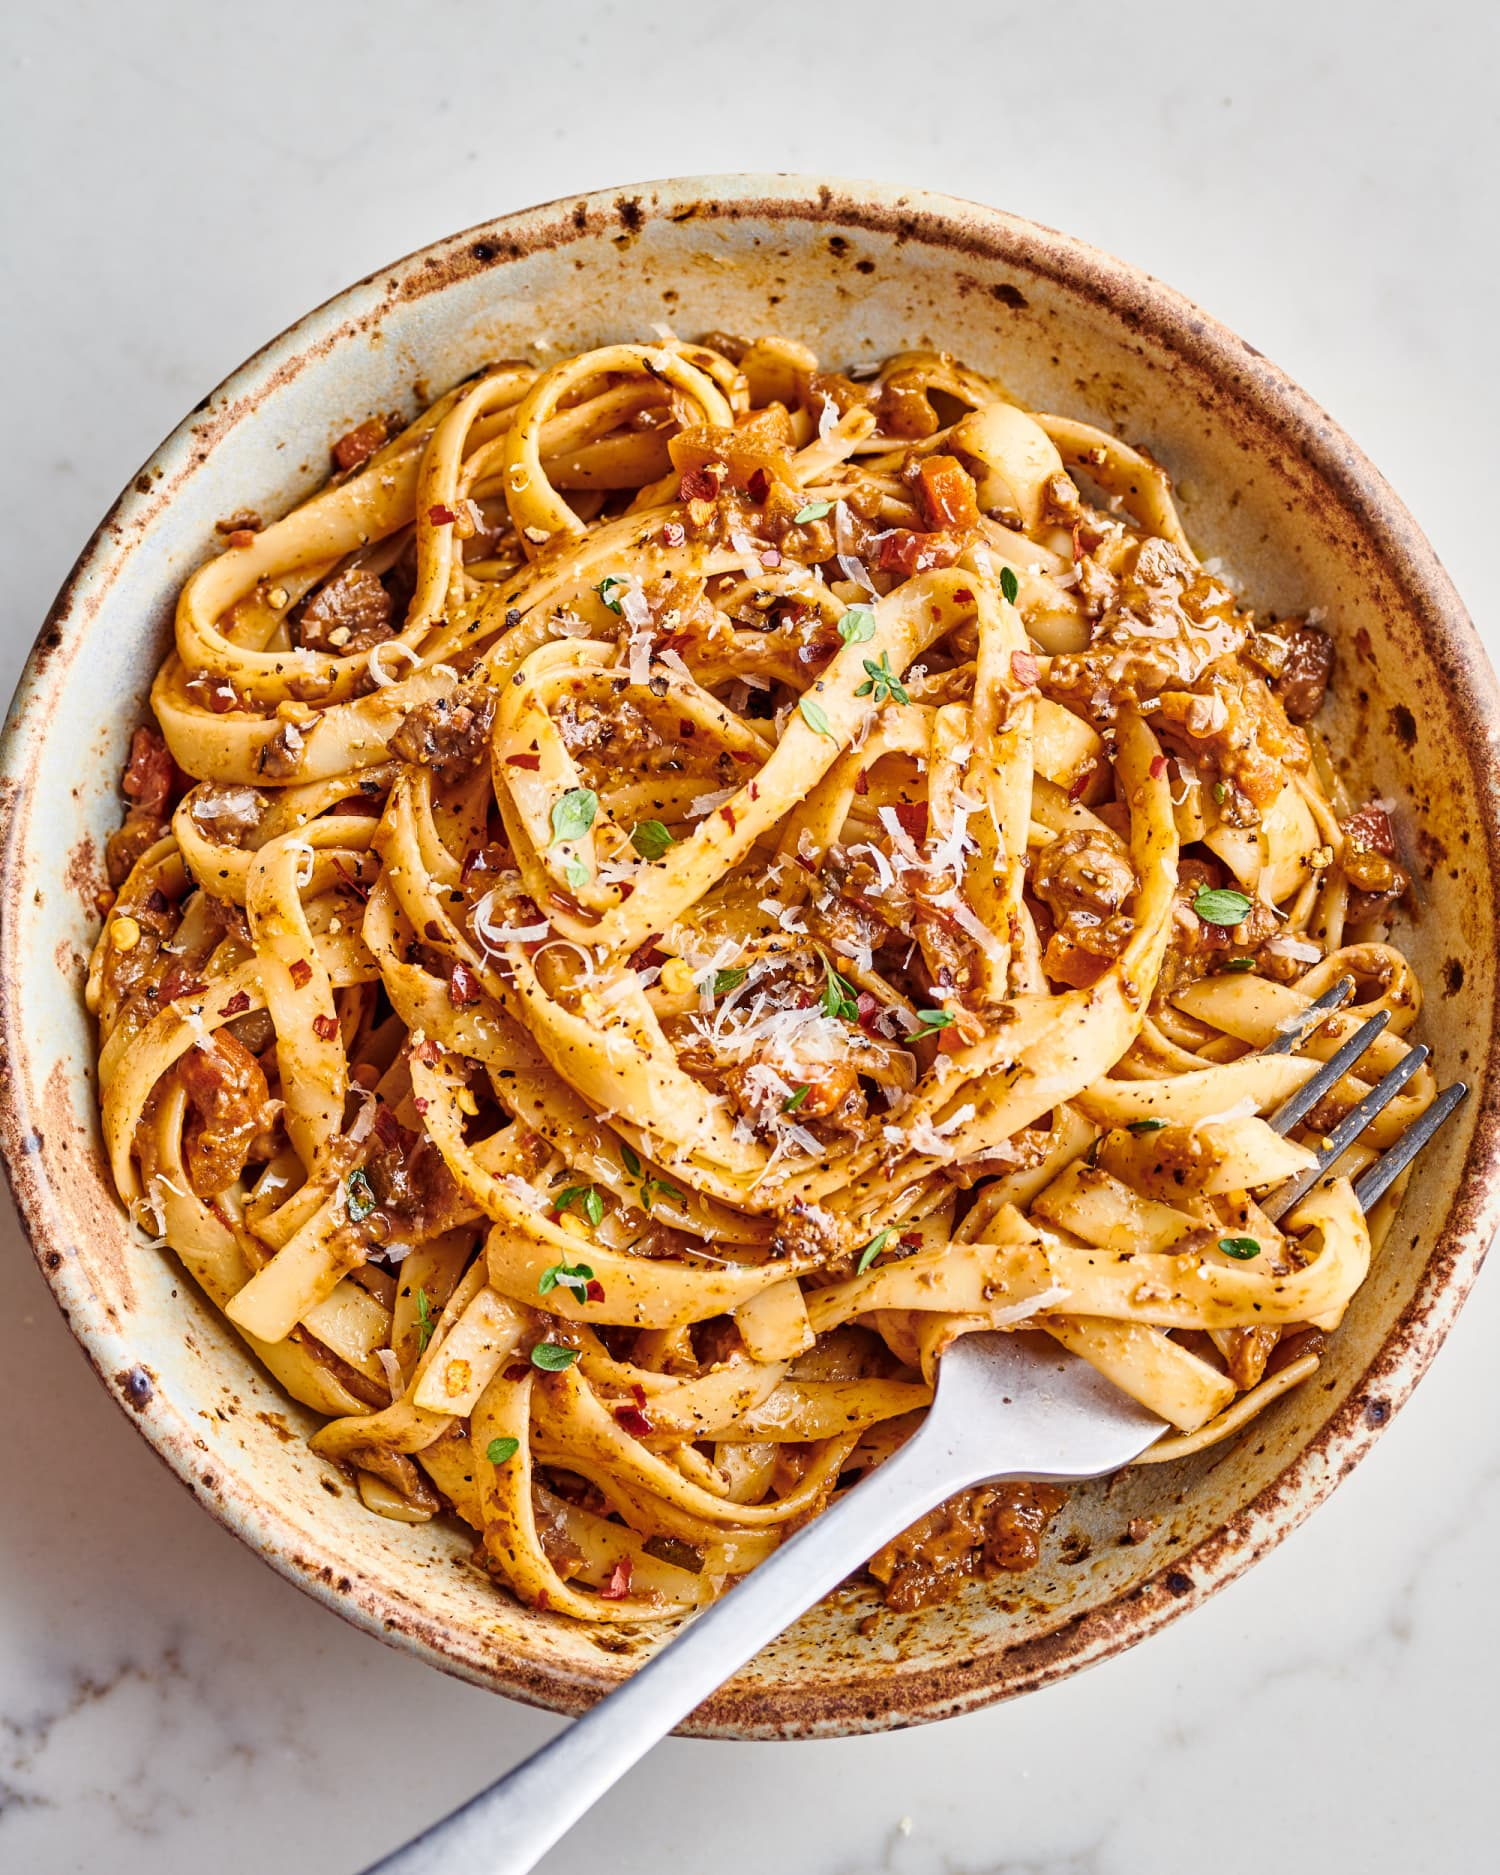 This Savory One-Pot Mushroom Bolognese Is Deeply Satisfying